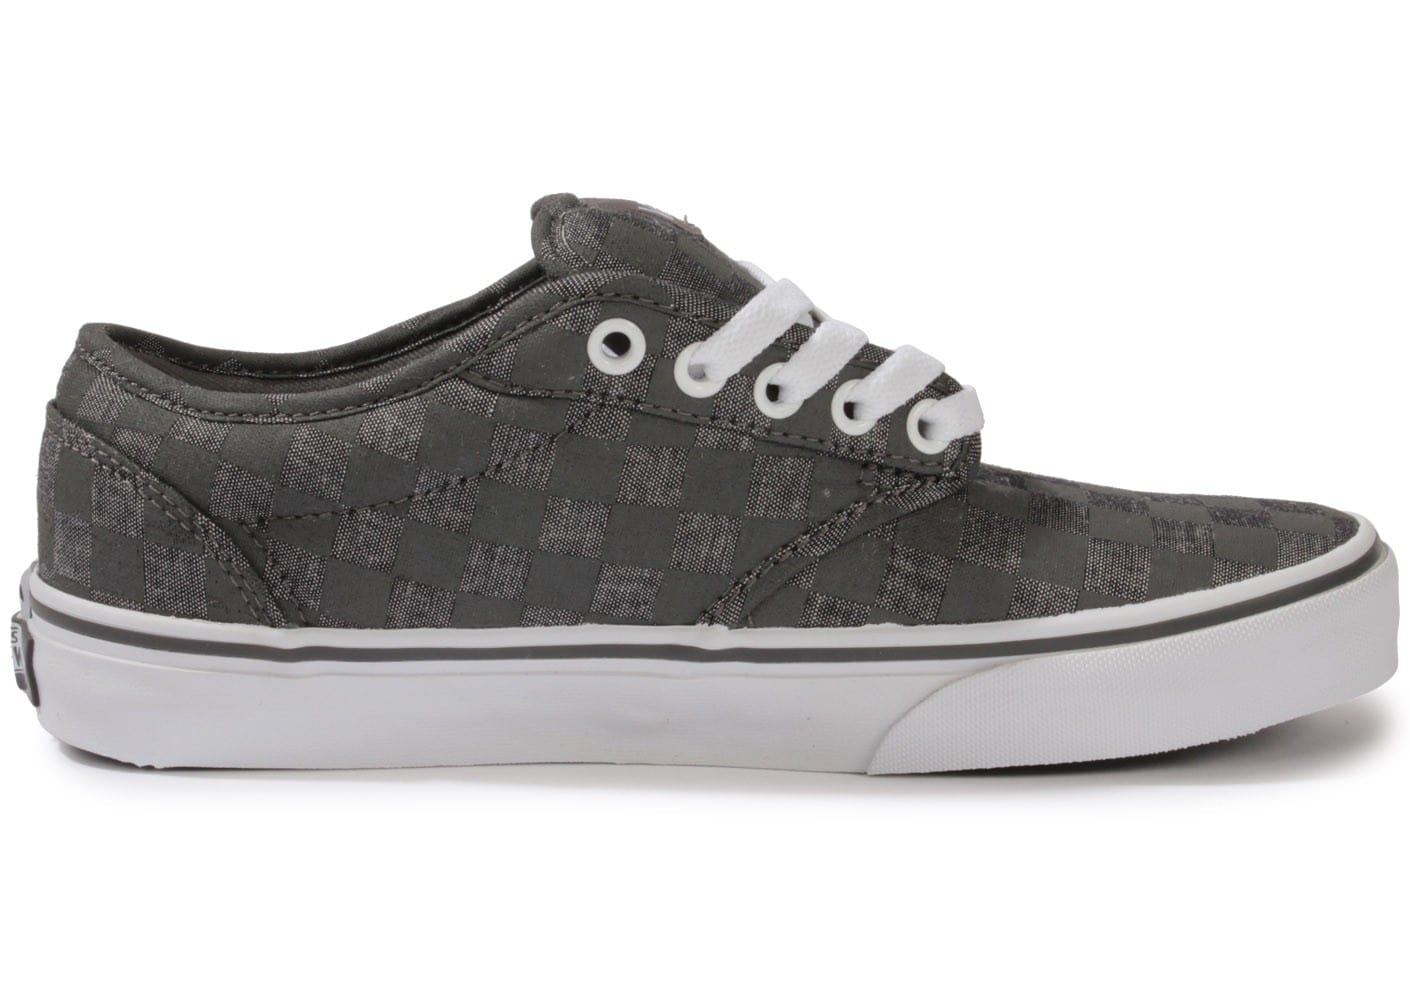 Vans Atwood Damier Grise Chaussures Chaussures Chausport